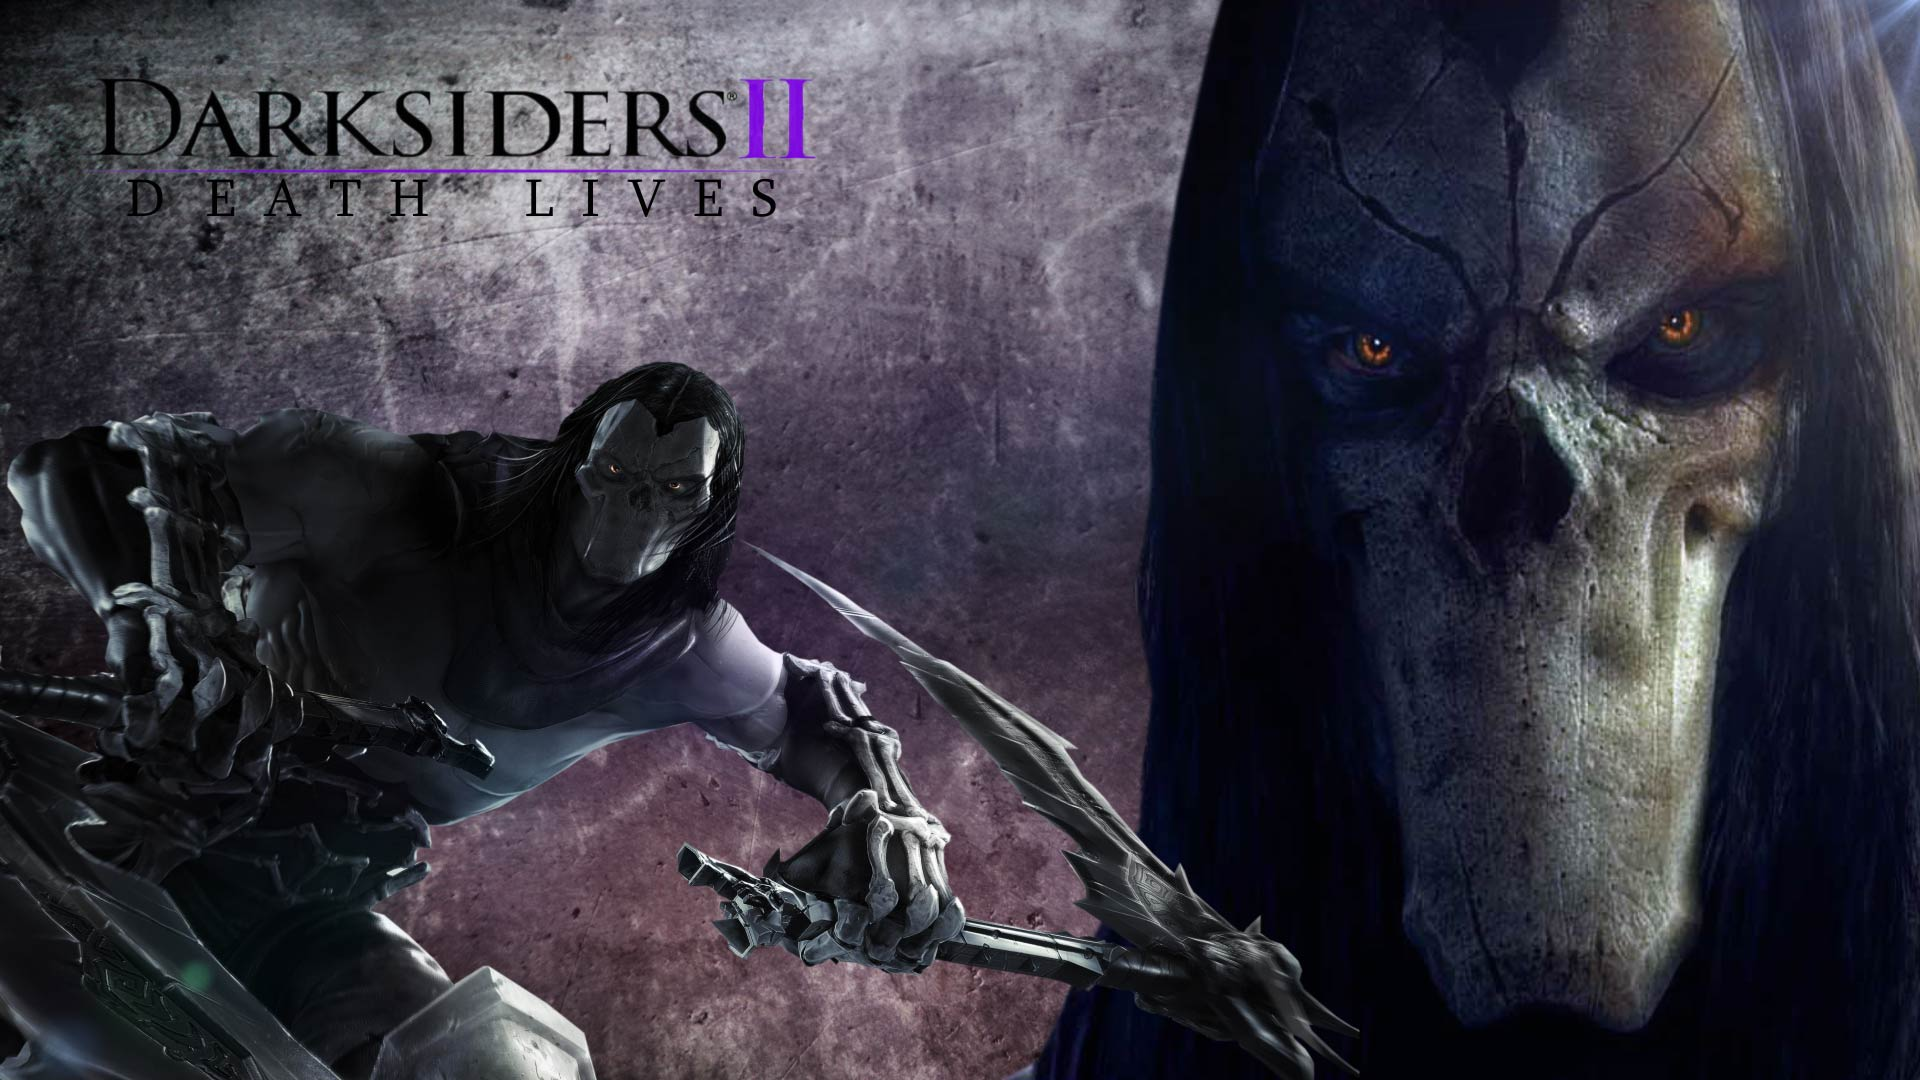 DZD Darksiders 1080p wallpaper by Dzdigital 1920x1080